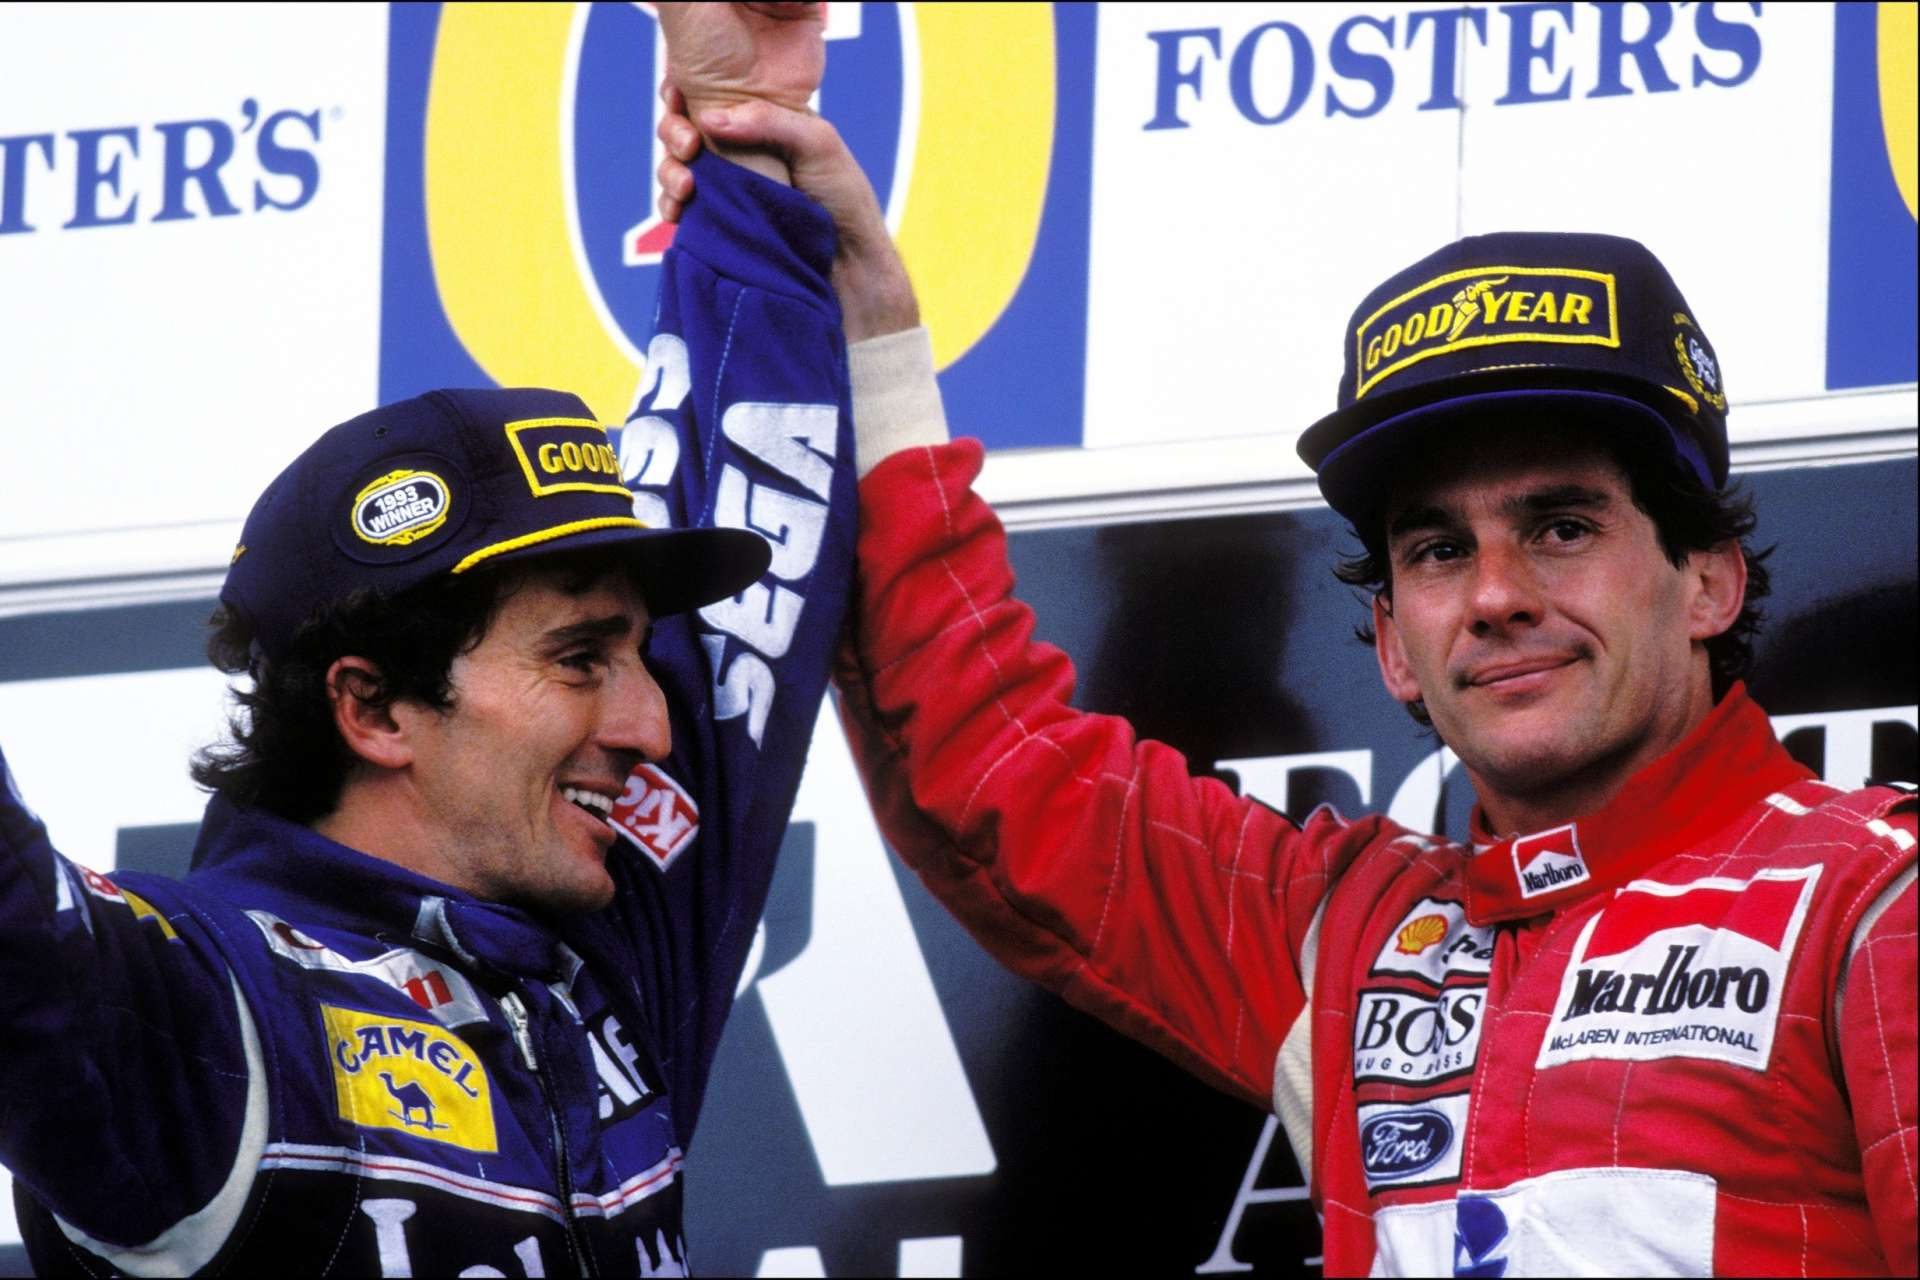 Ayrton Senna famously reconciled with long-time rival Alain Prost on the podium in Adelaide.